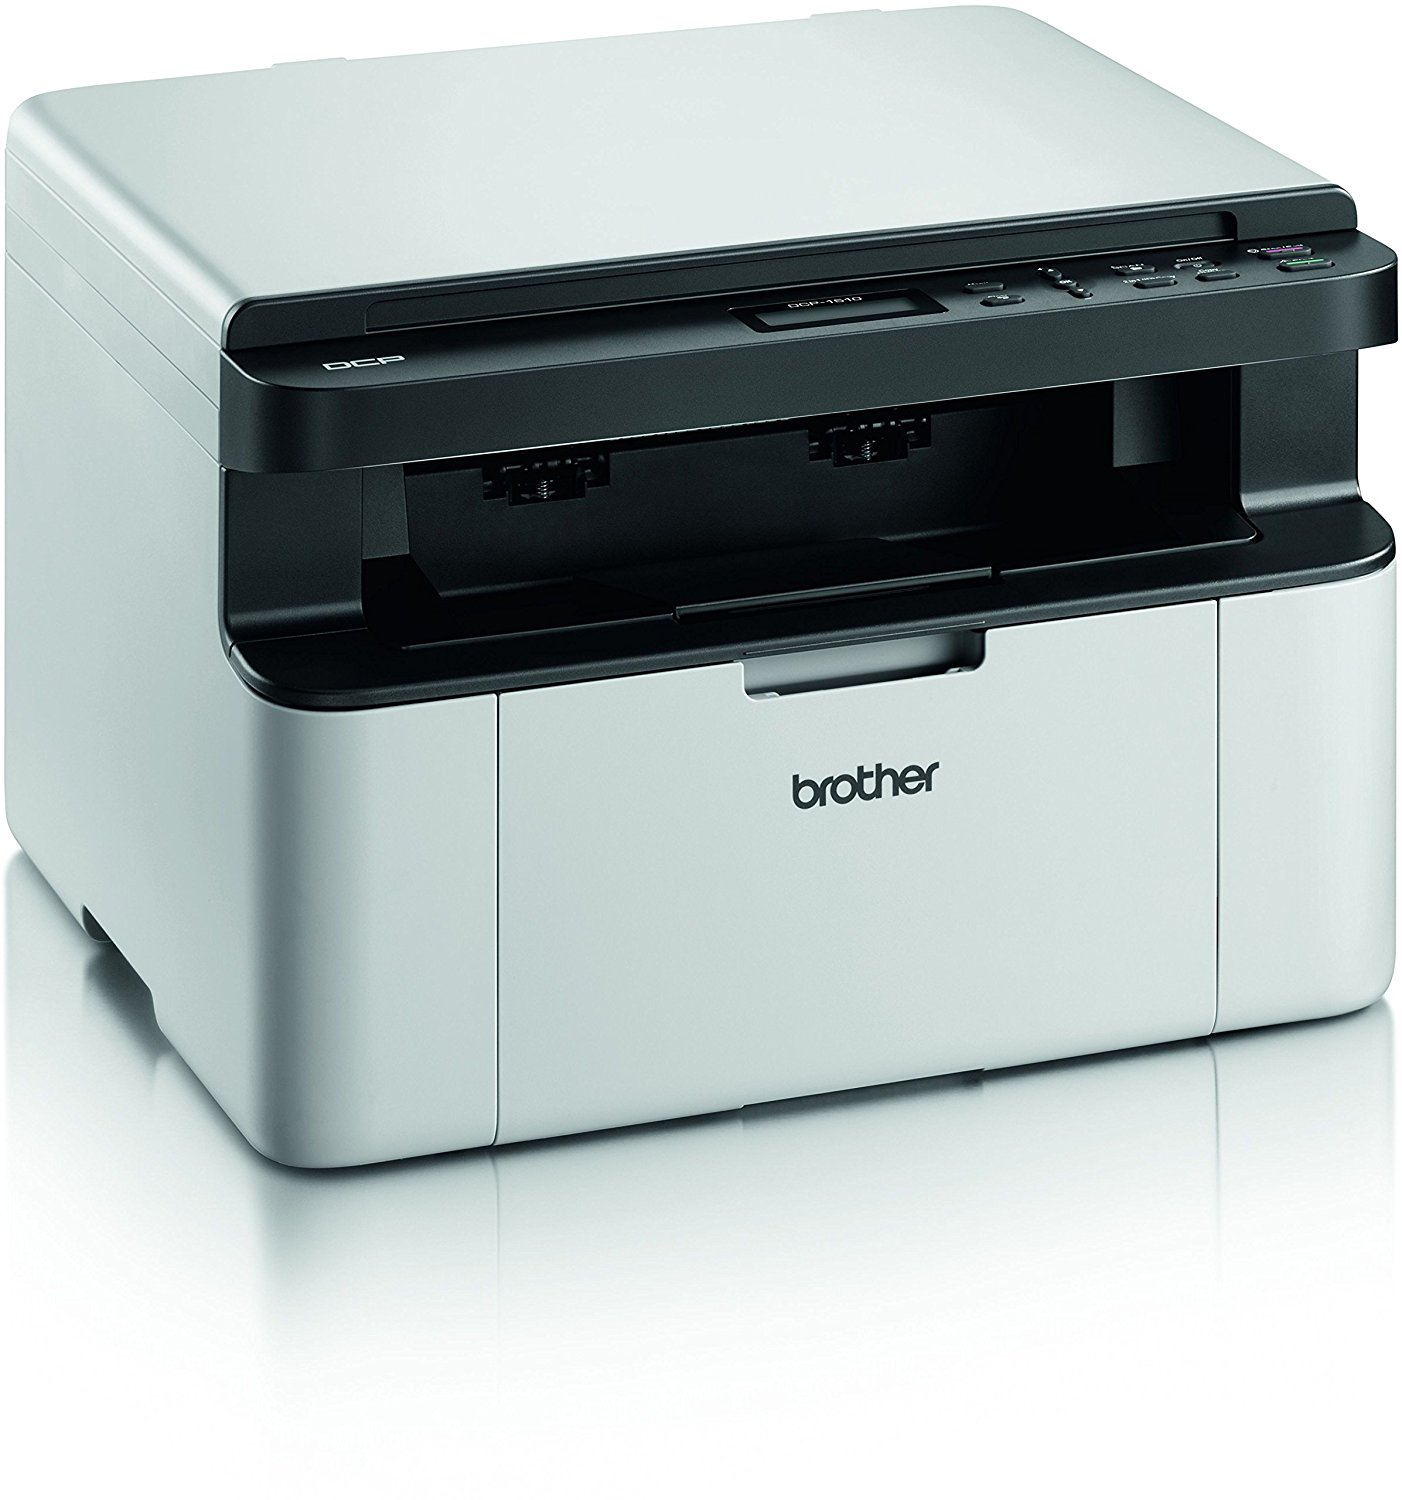 МФУ Brother DCP-1510 мфу brother dcp 1510r